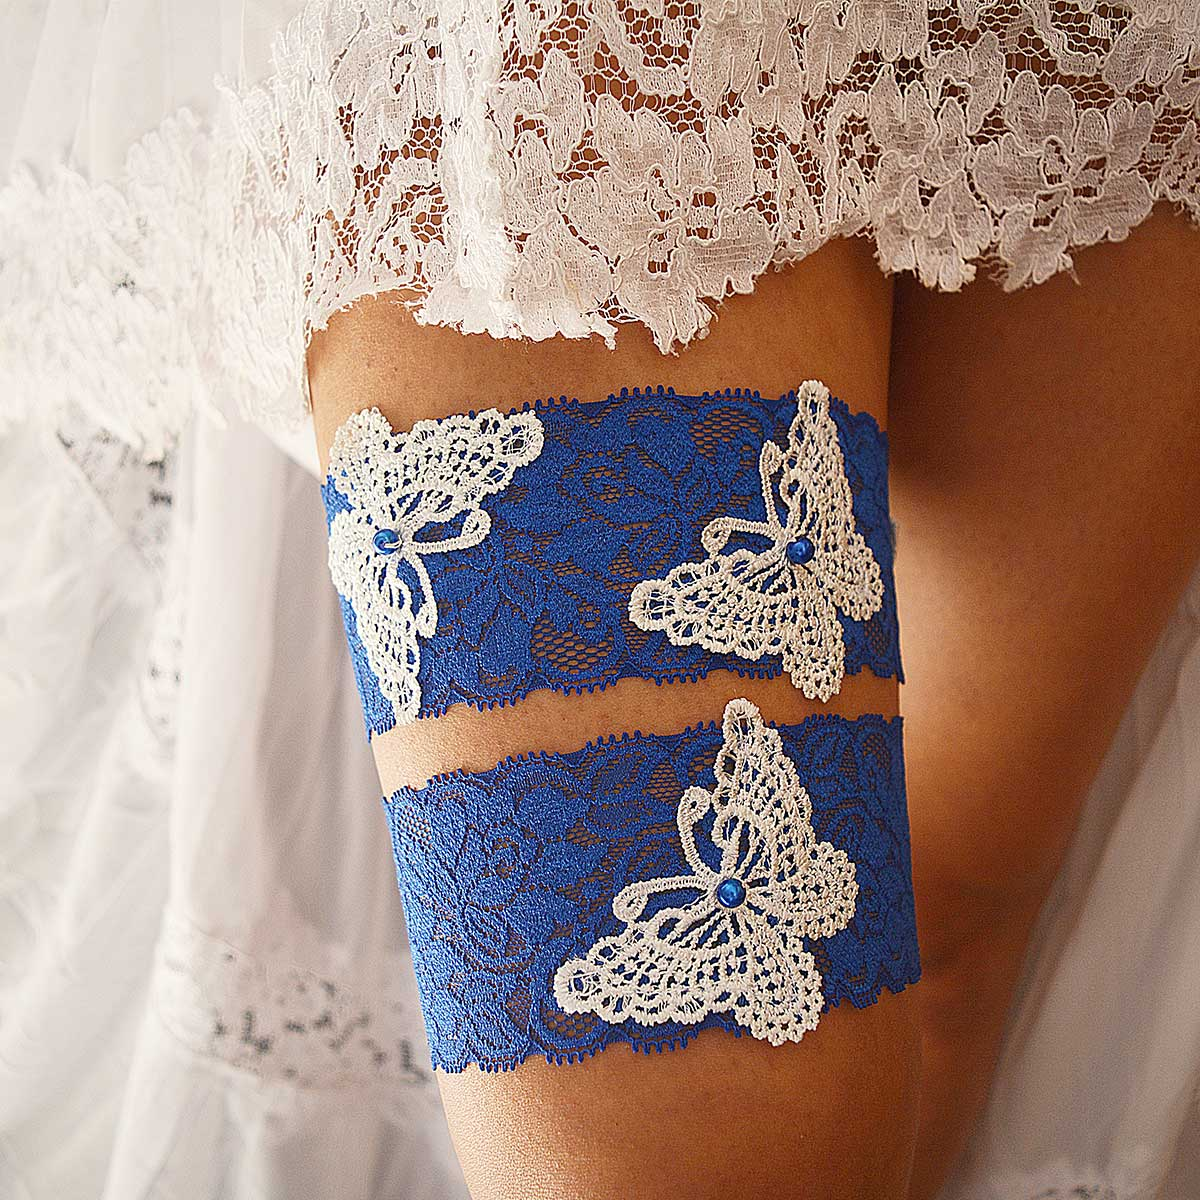 Royal Blue Bridal Garter With White Butterfly Applique & Pearls